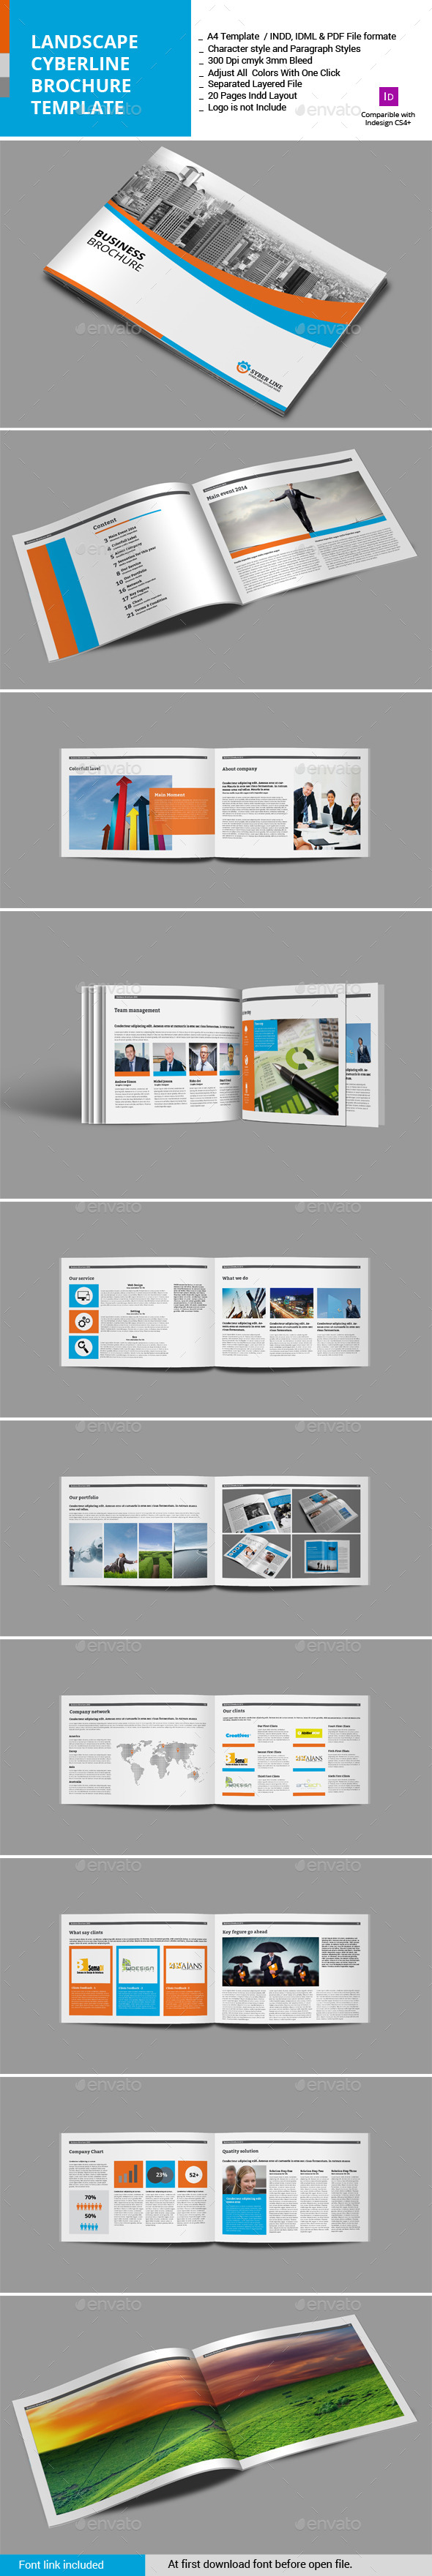 GraphicRiver Landscape Syberline Brochure Template 11427861